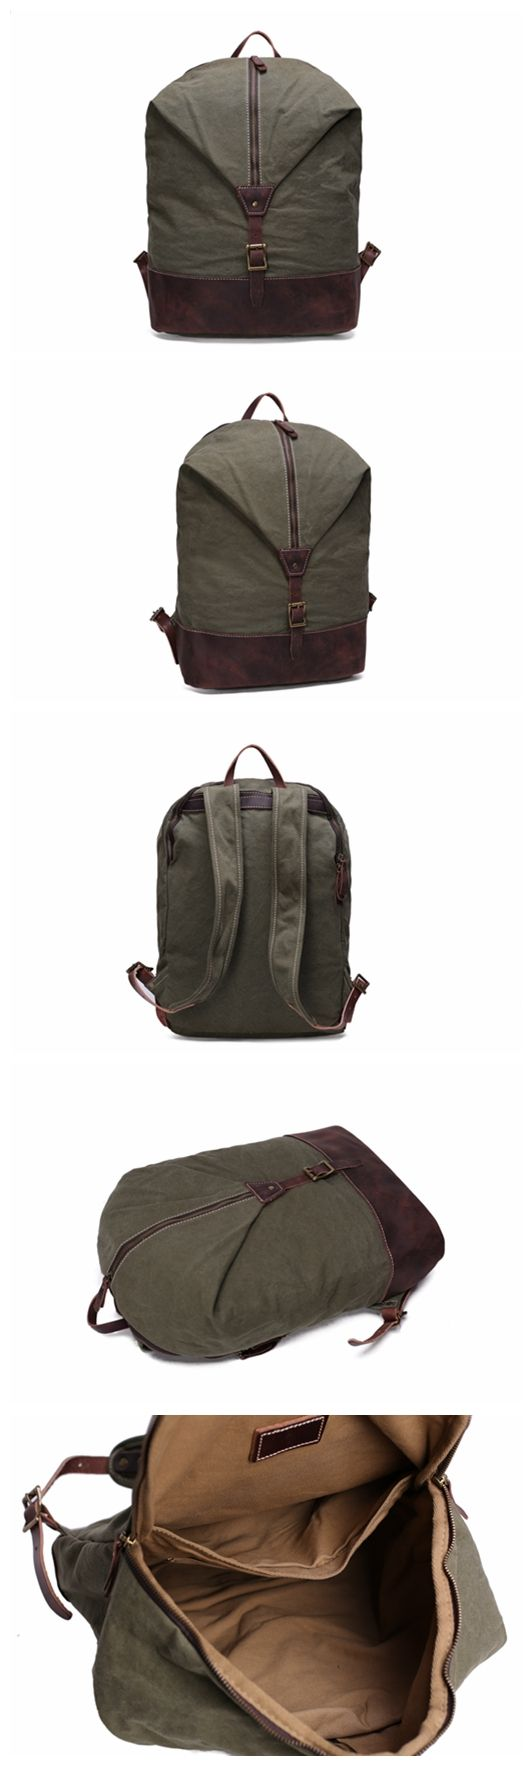 CASUAL CANVAS LEATHER BACKPACK, WAXED CANVAS BACKPACK SCHOOL BACKPACK FOR TEENS TRAVEL BACKPACK